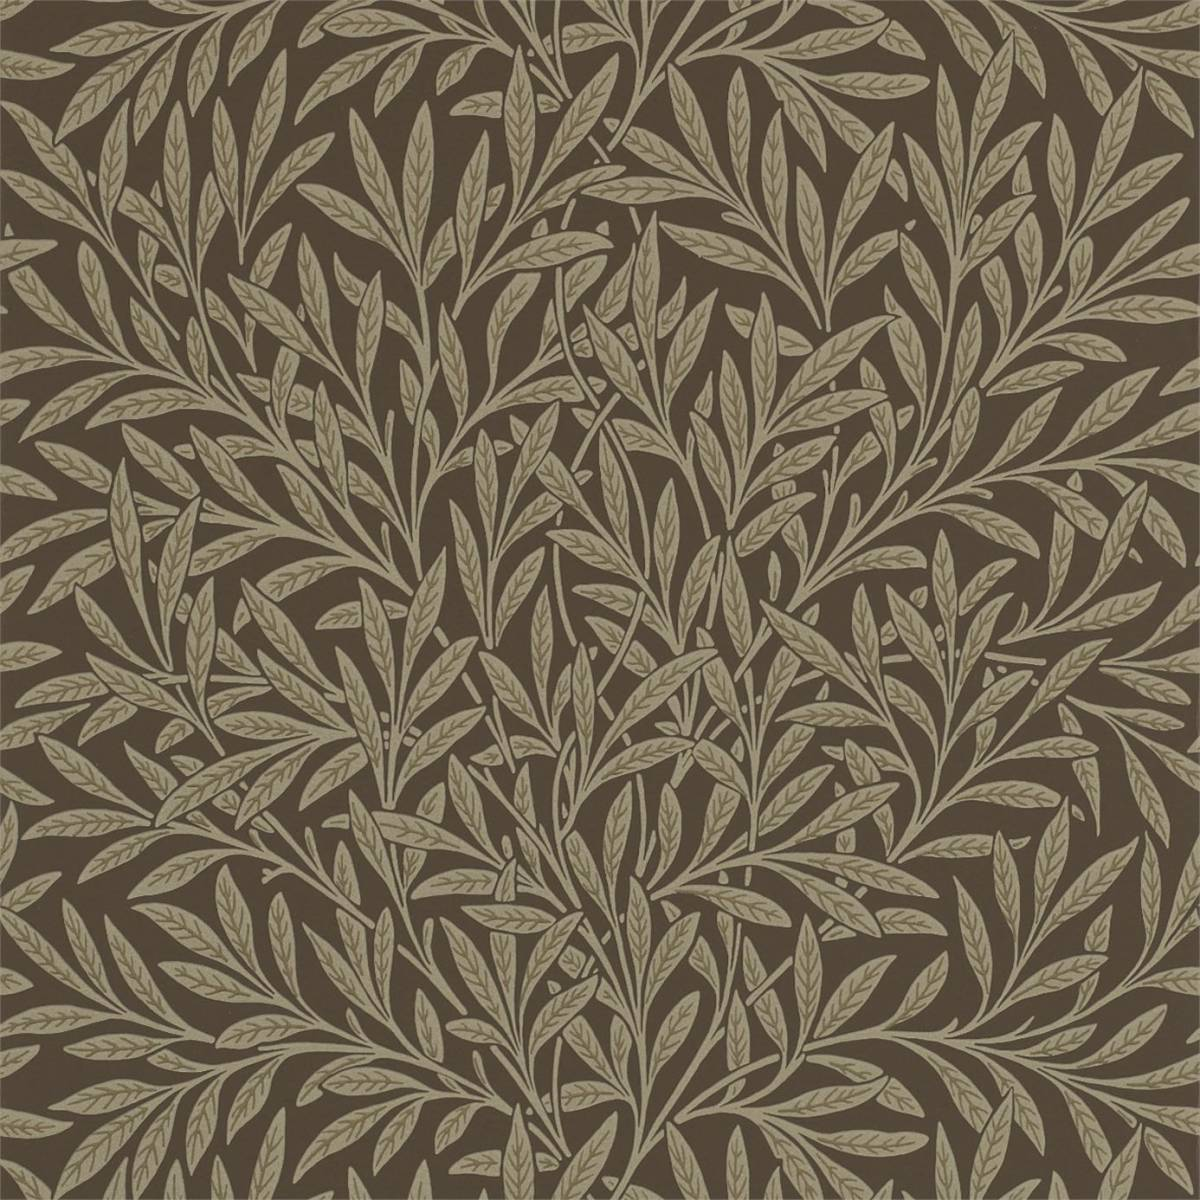 Willow wallpaper bullrush 210380 william morris co archive wallpapers collection - Wallpaper design ...